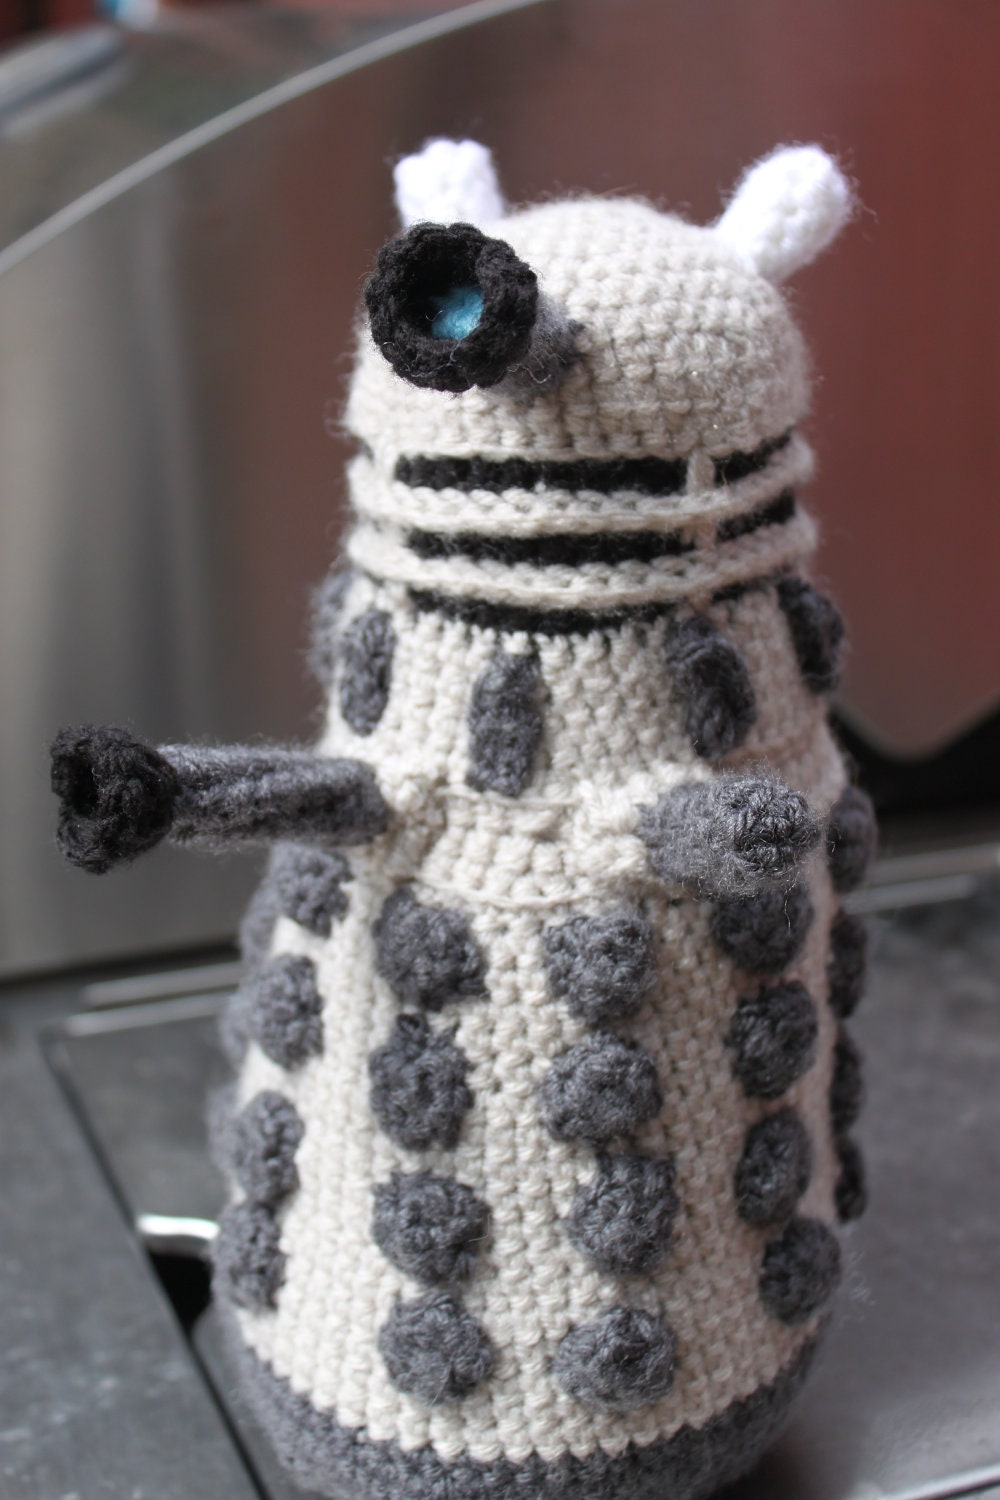 Geek Craft: The Daleks Fi & Me